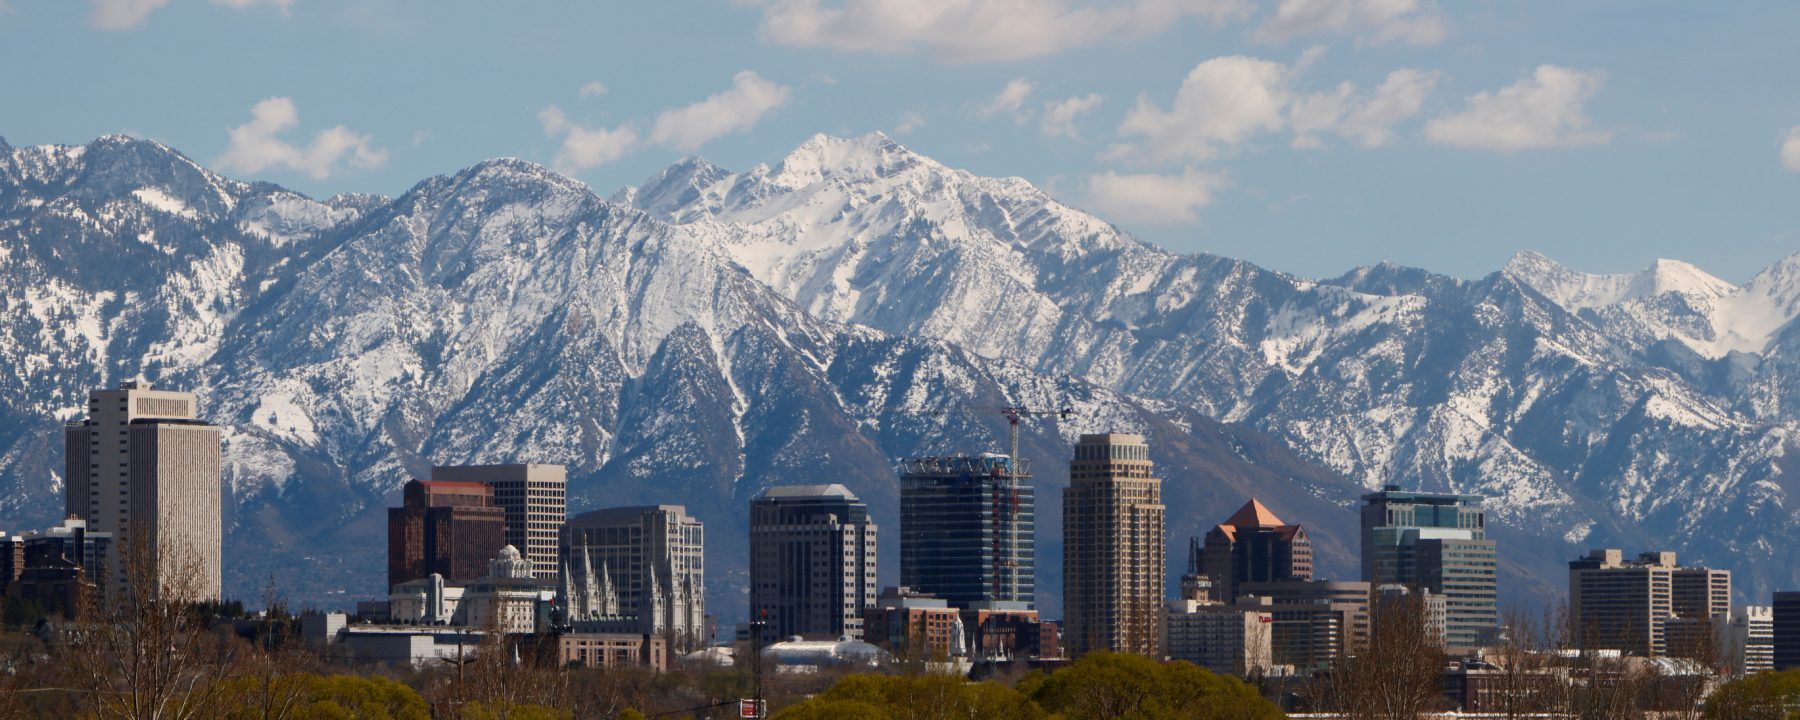 the skyline of Salt Lake City with mountains in the background